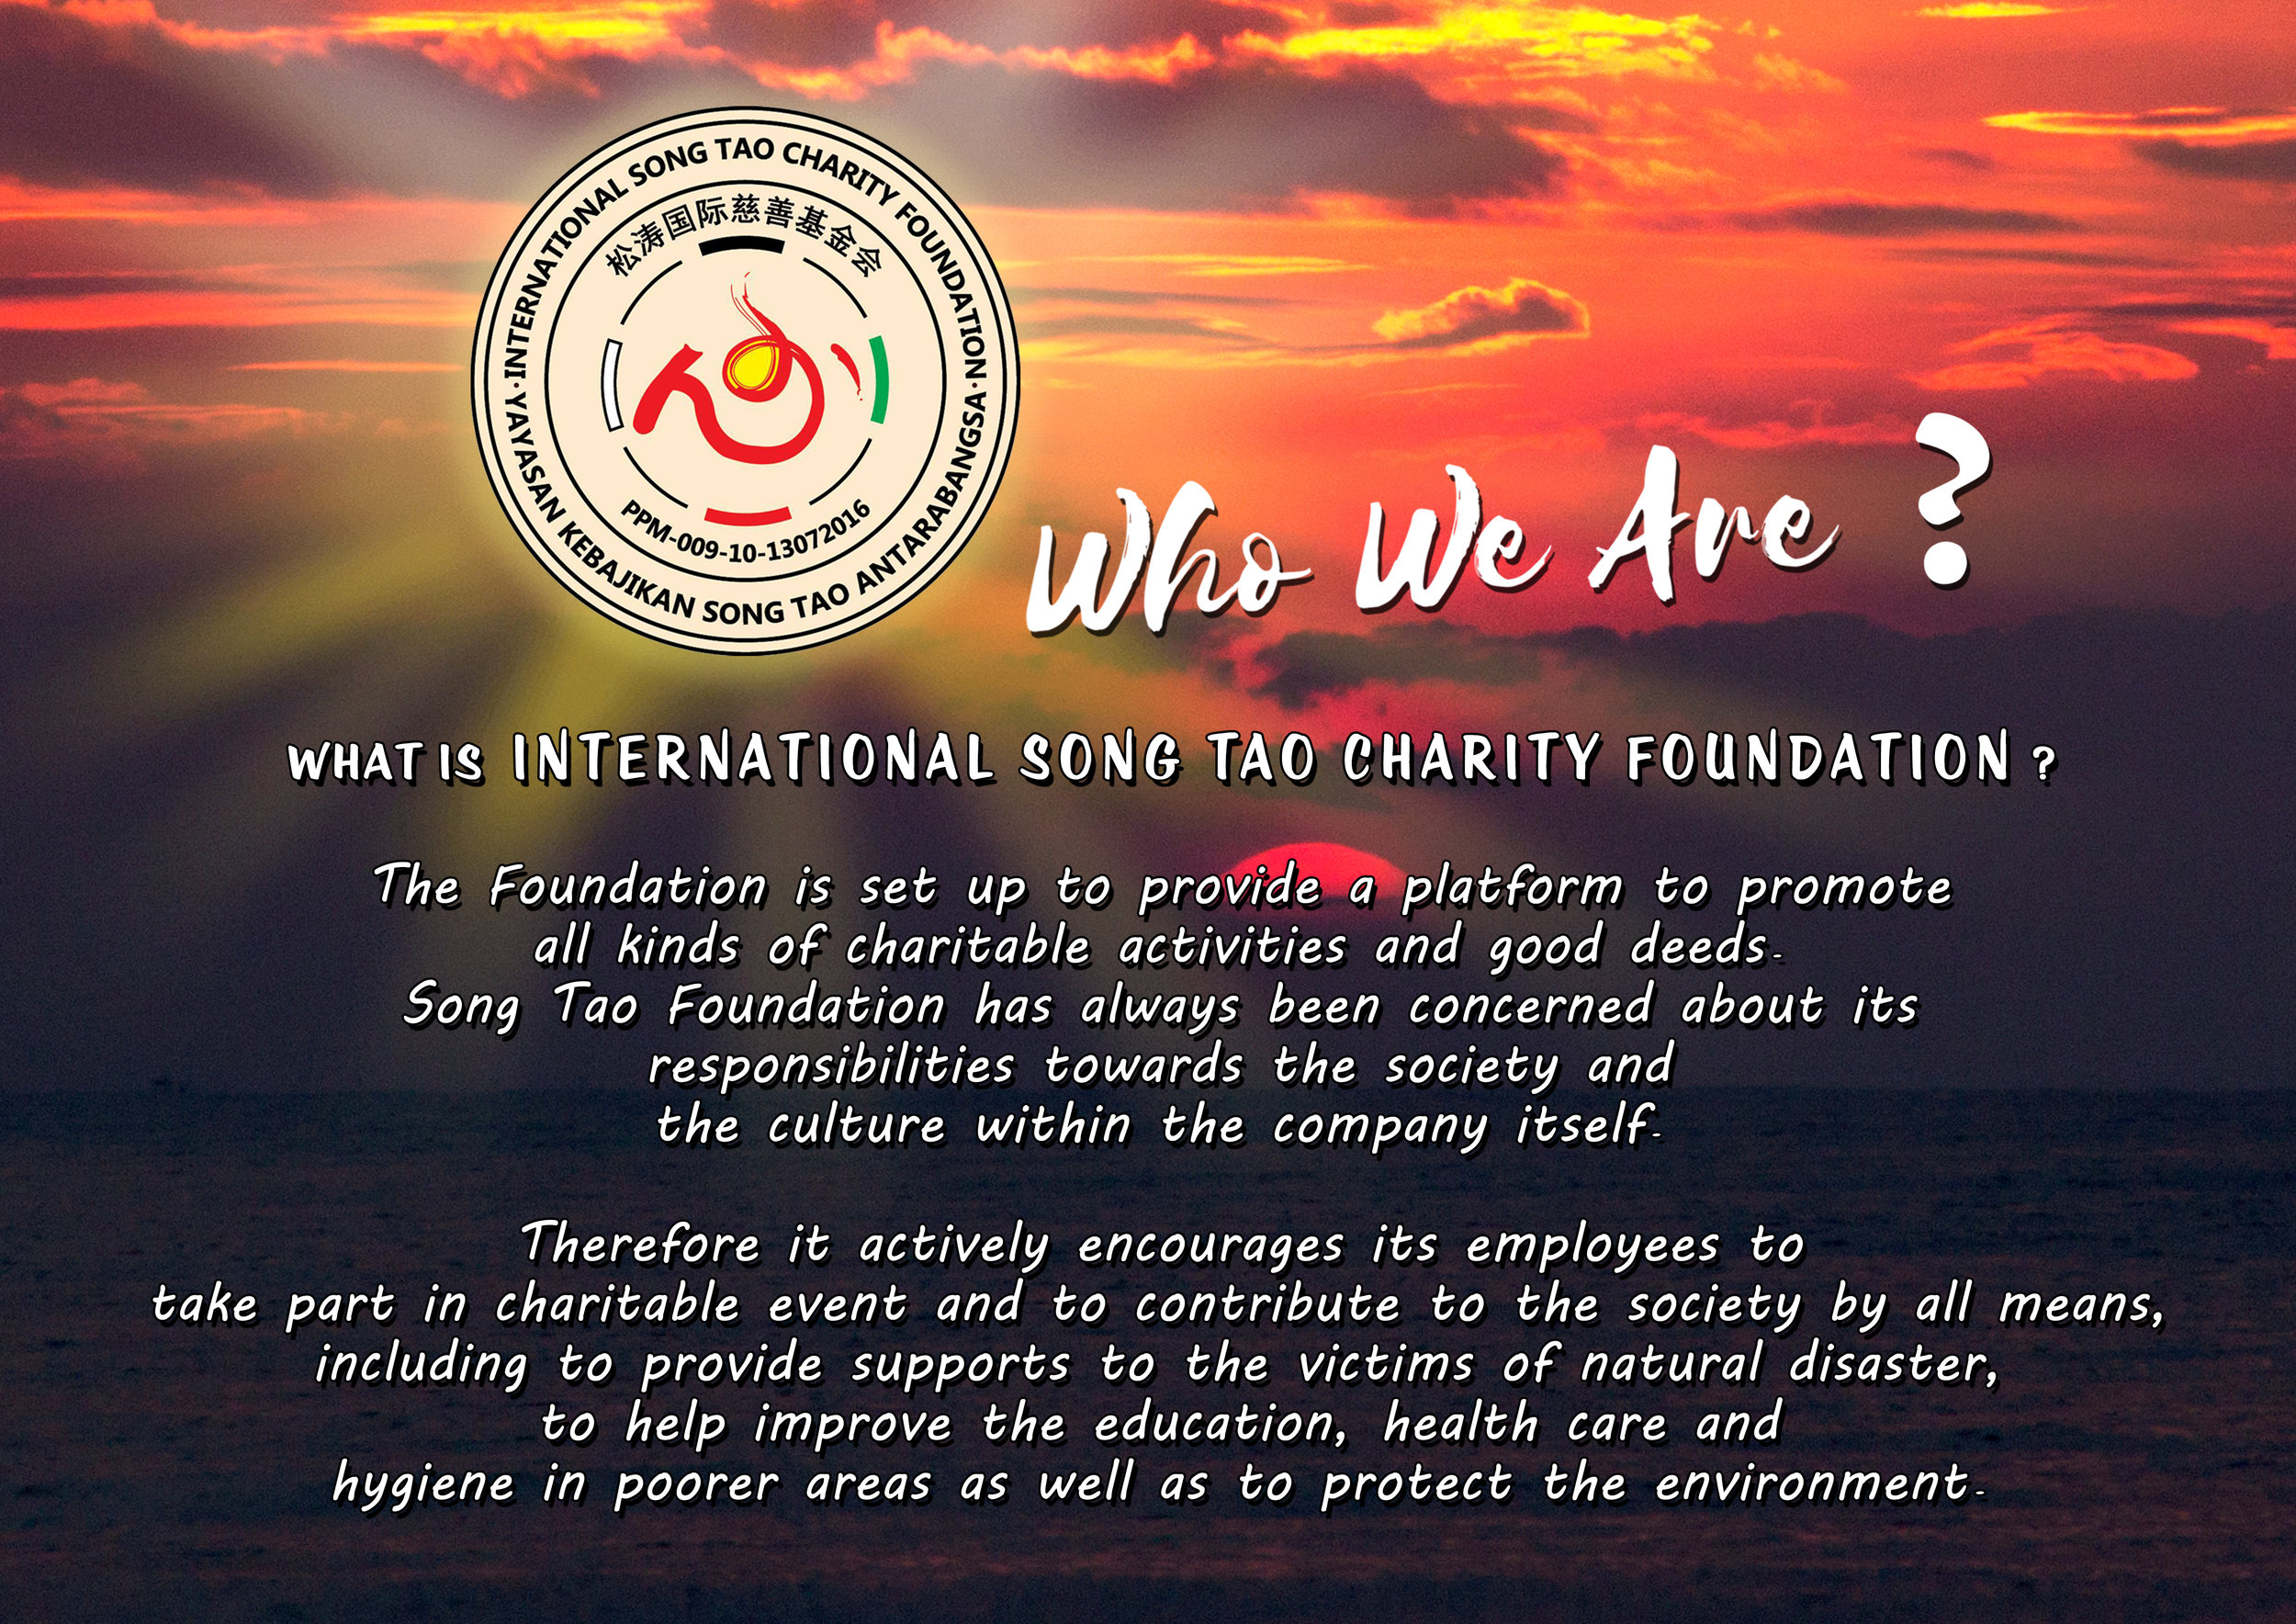 Introduction about International Song Tao Charity Foundation